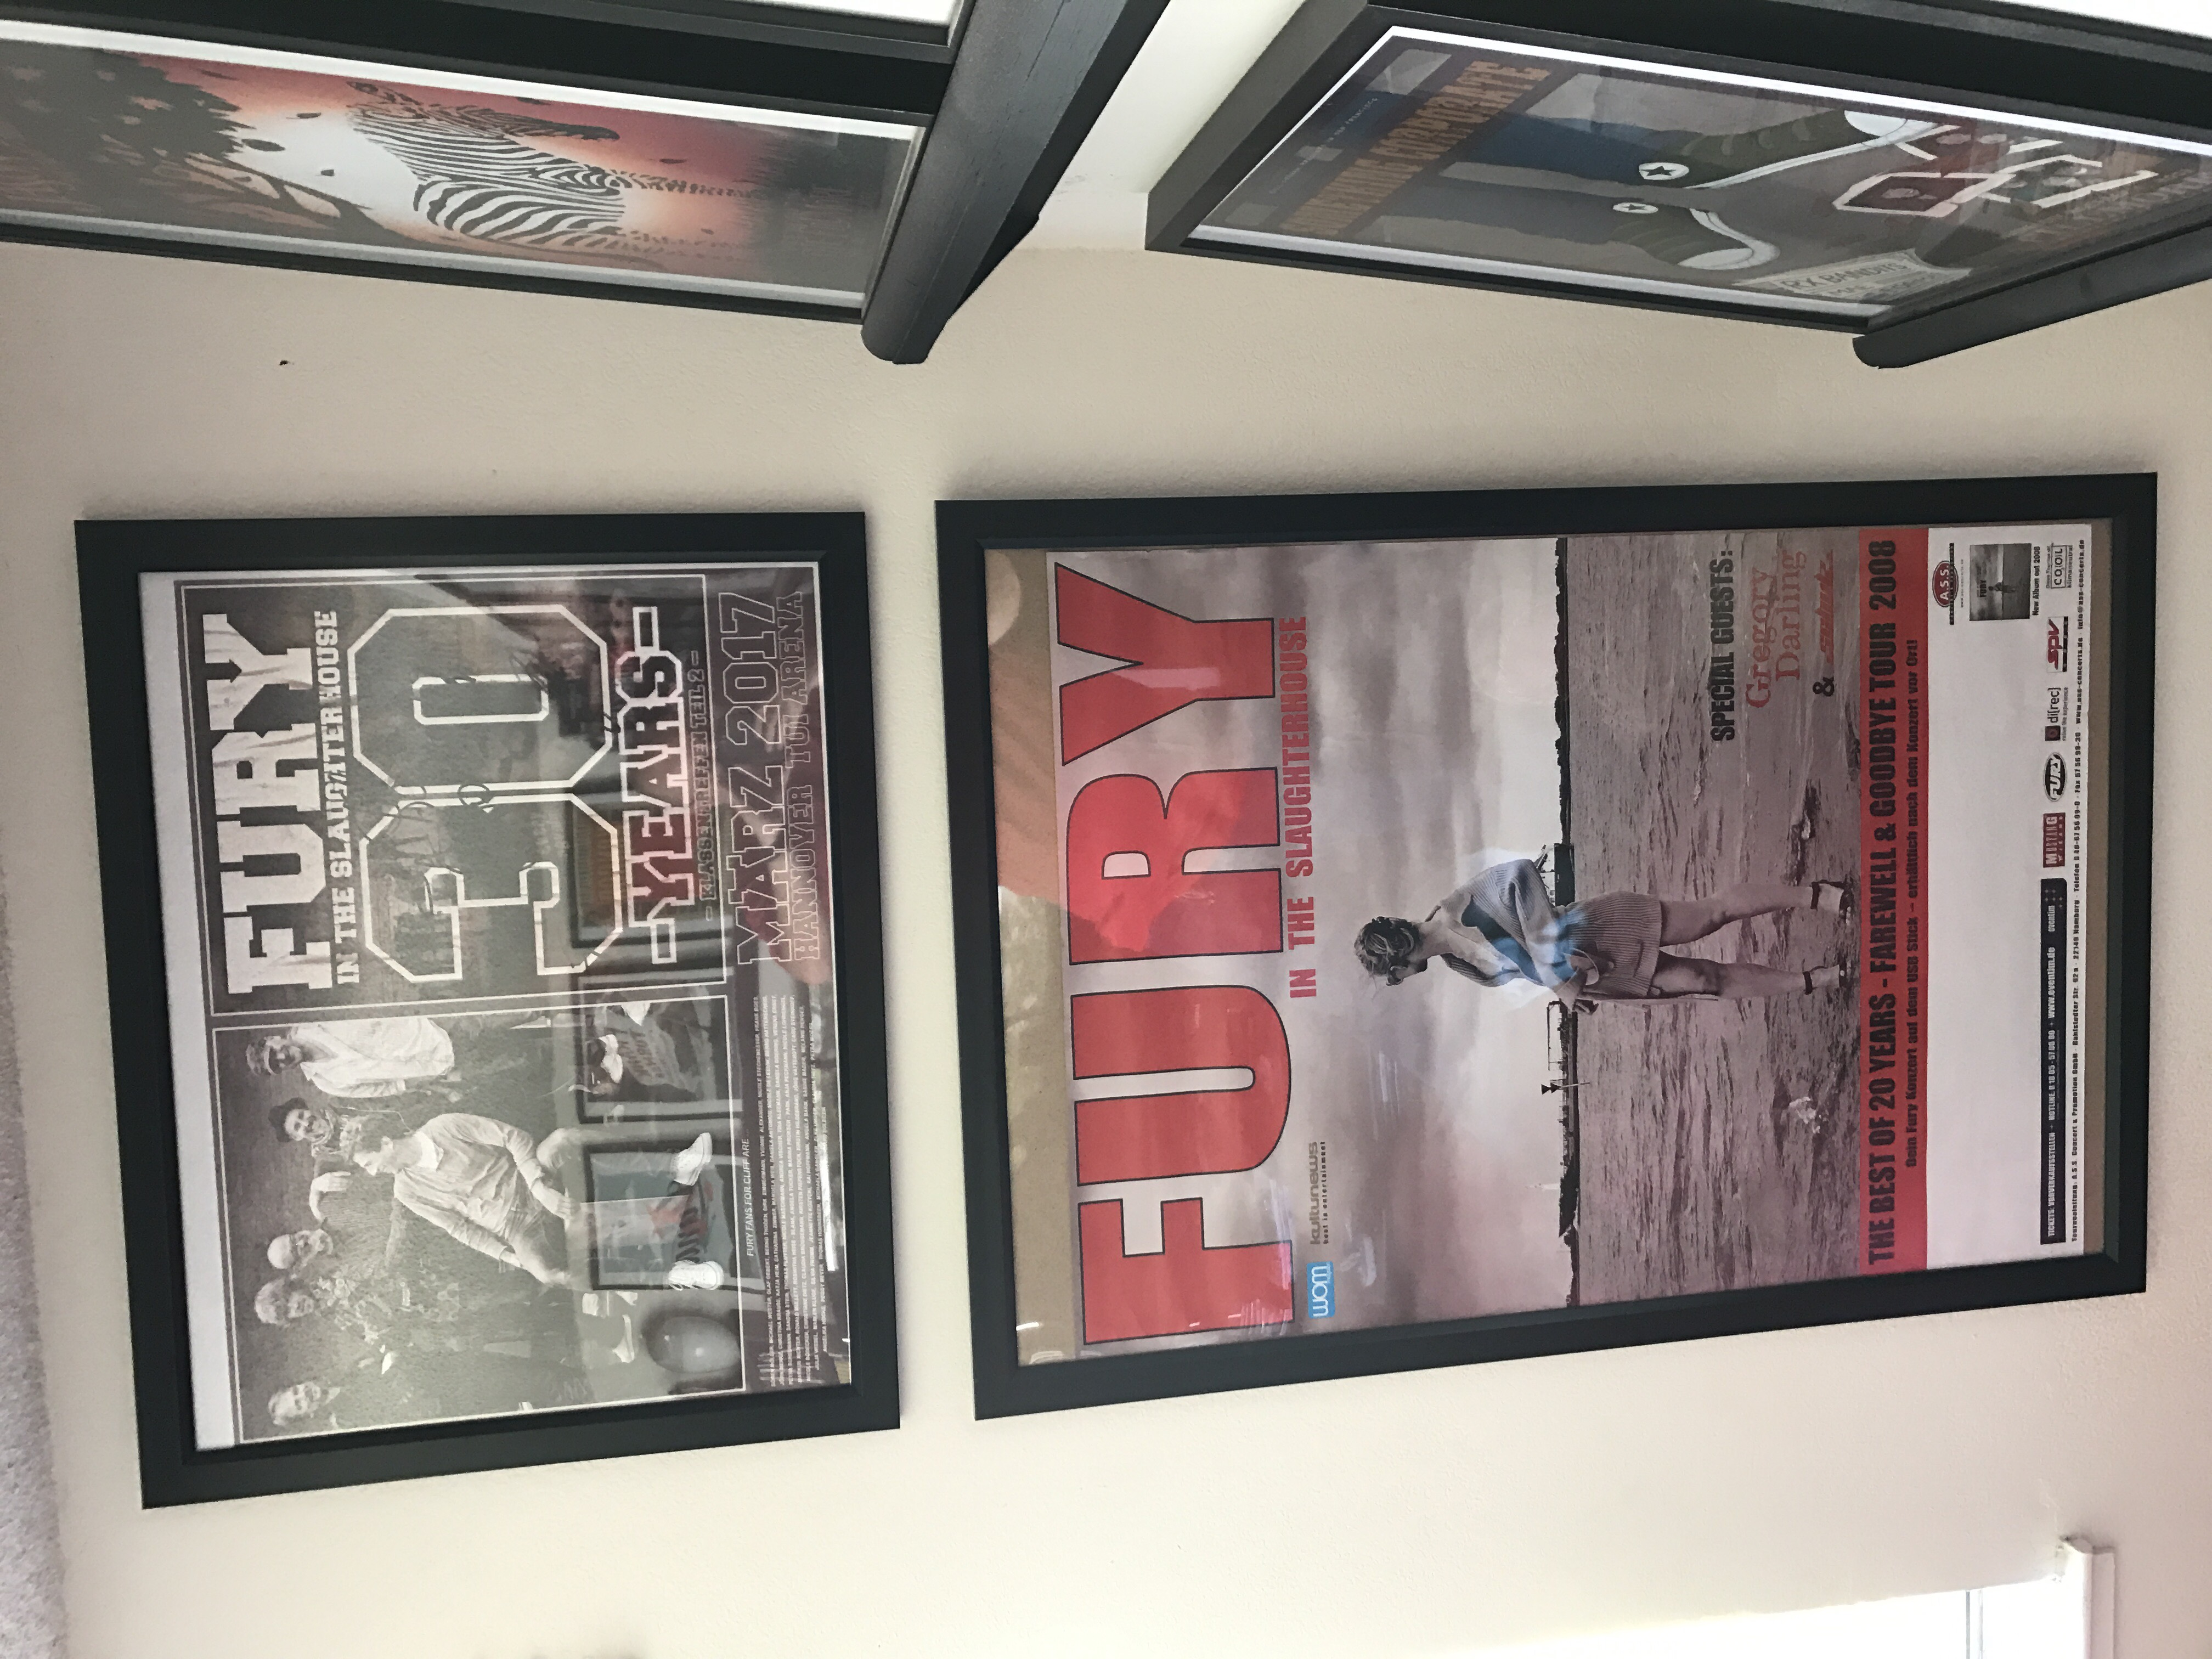 My Fury posters